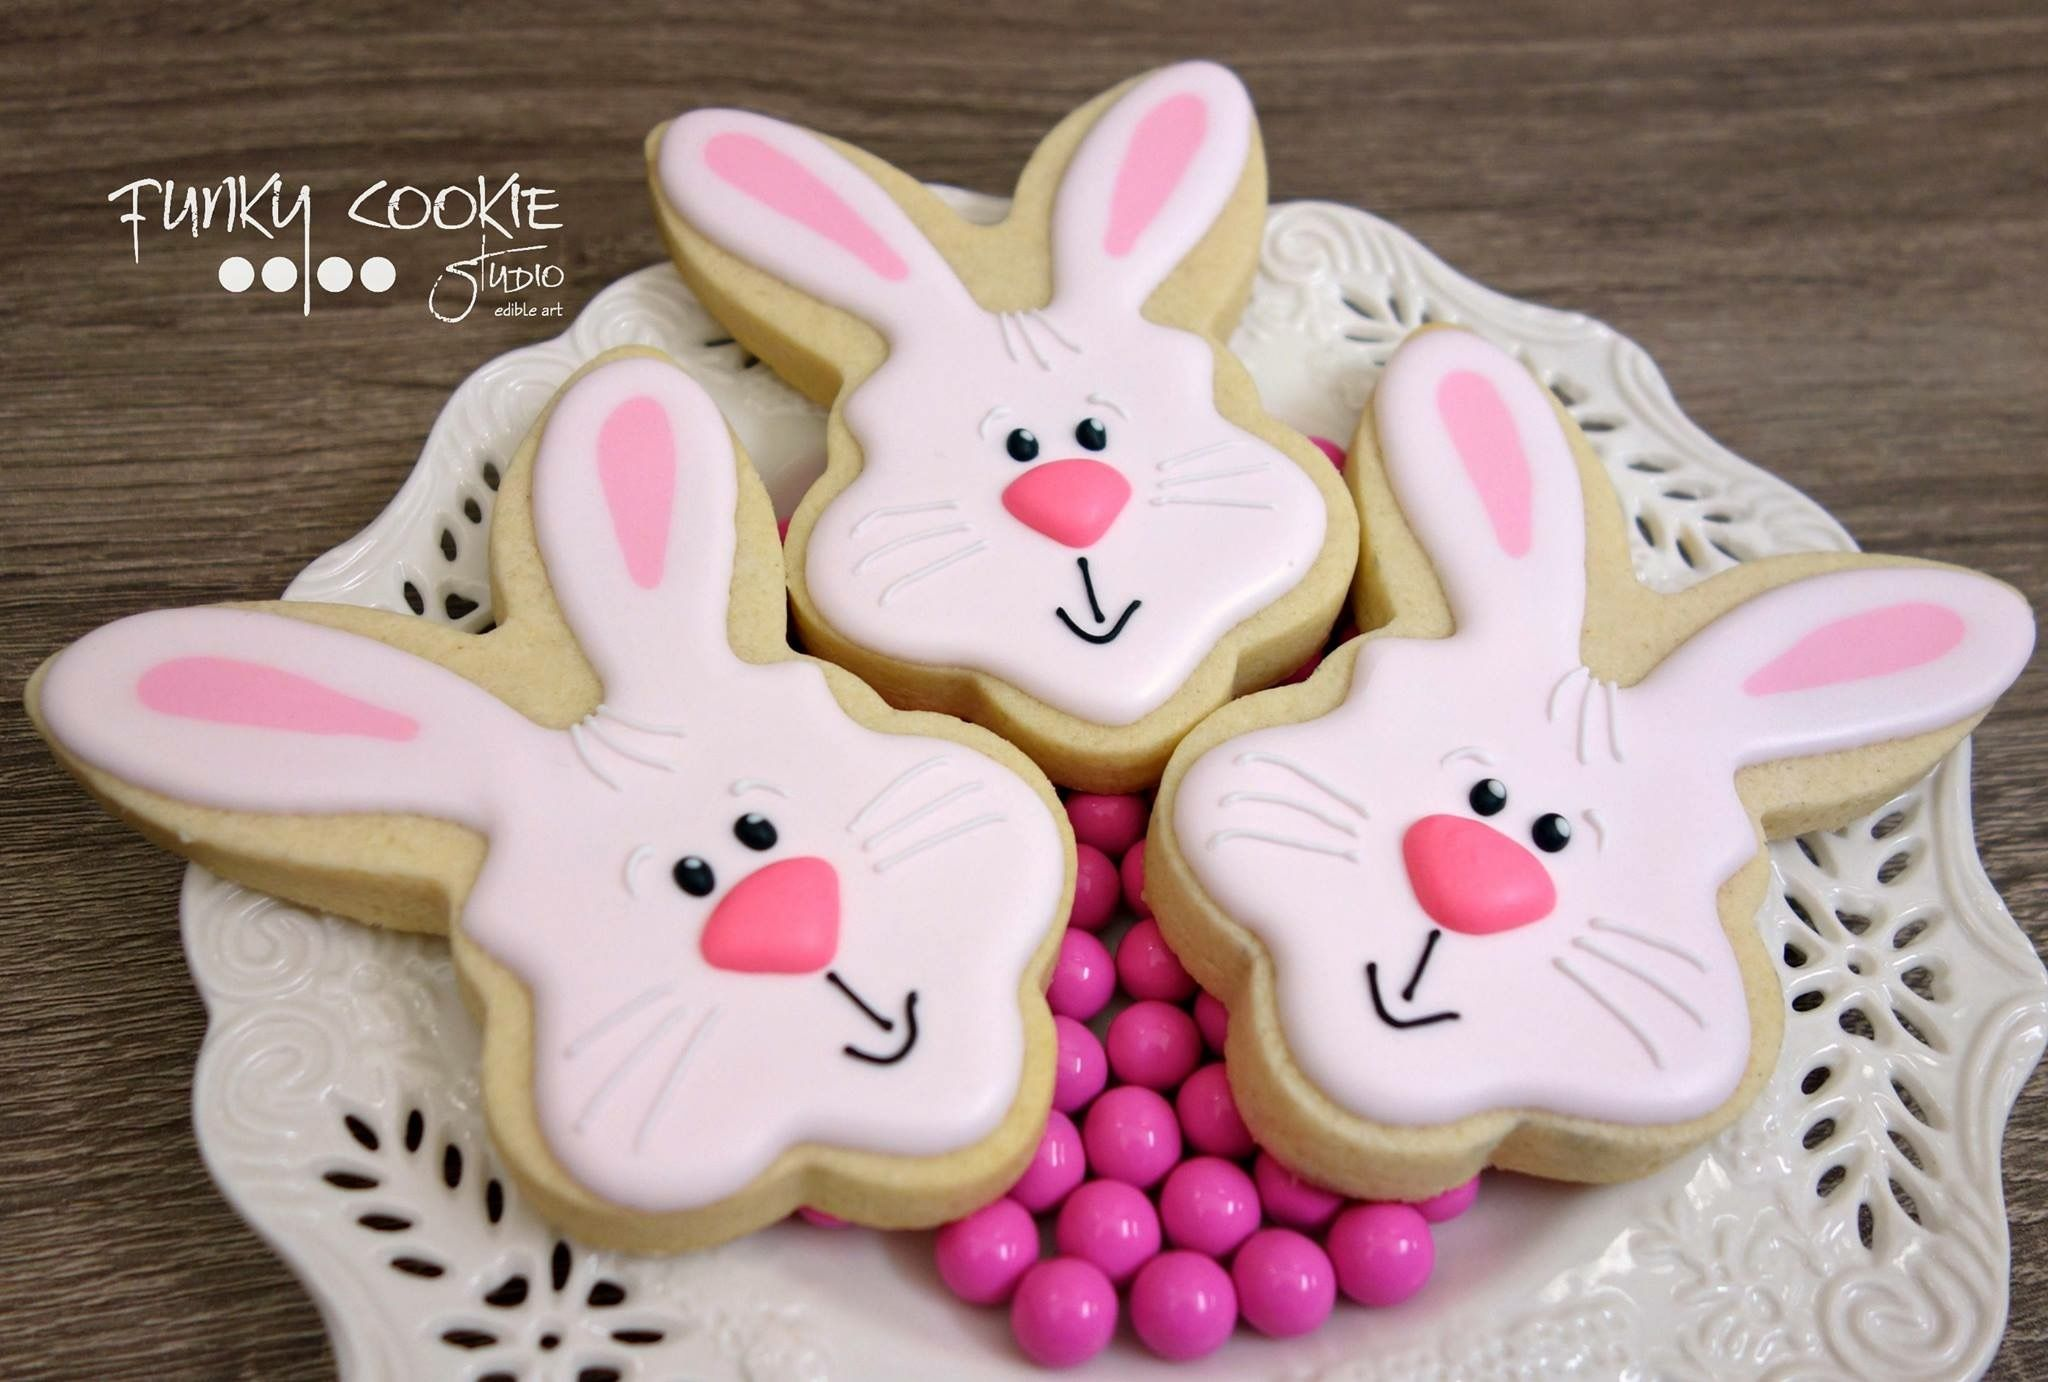 Discussion on this topic: Sugar Cookie Bunnies and Lambs, sugar-cookie-bunnies-and-lambs/